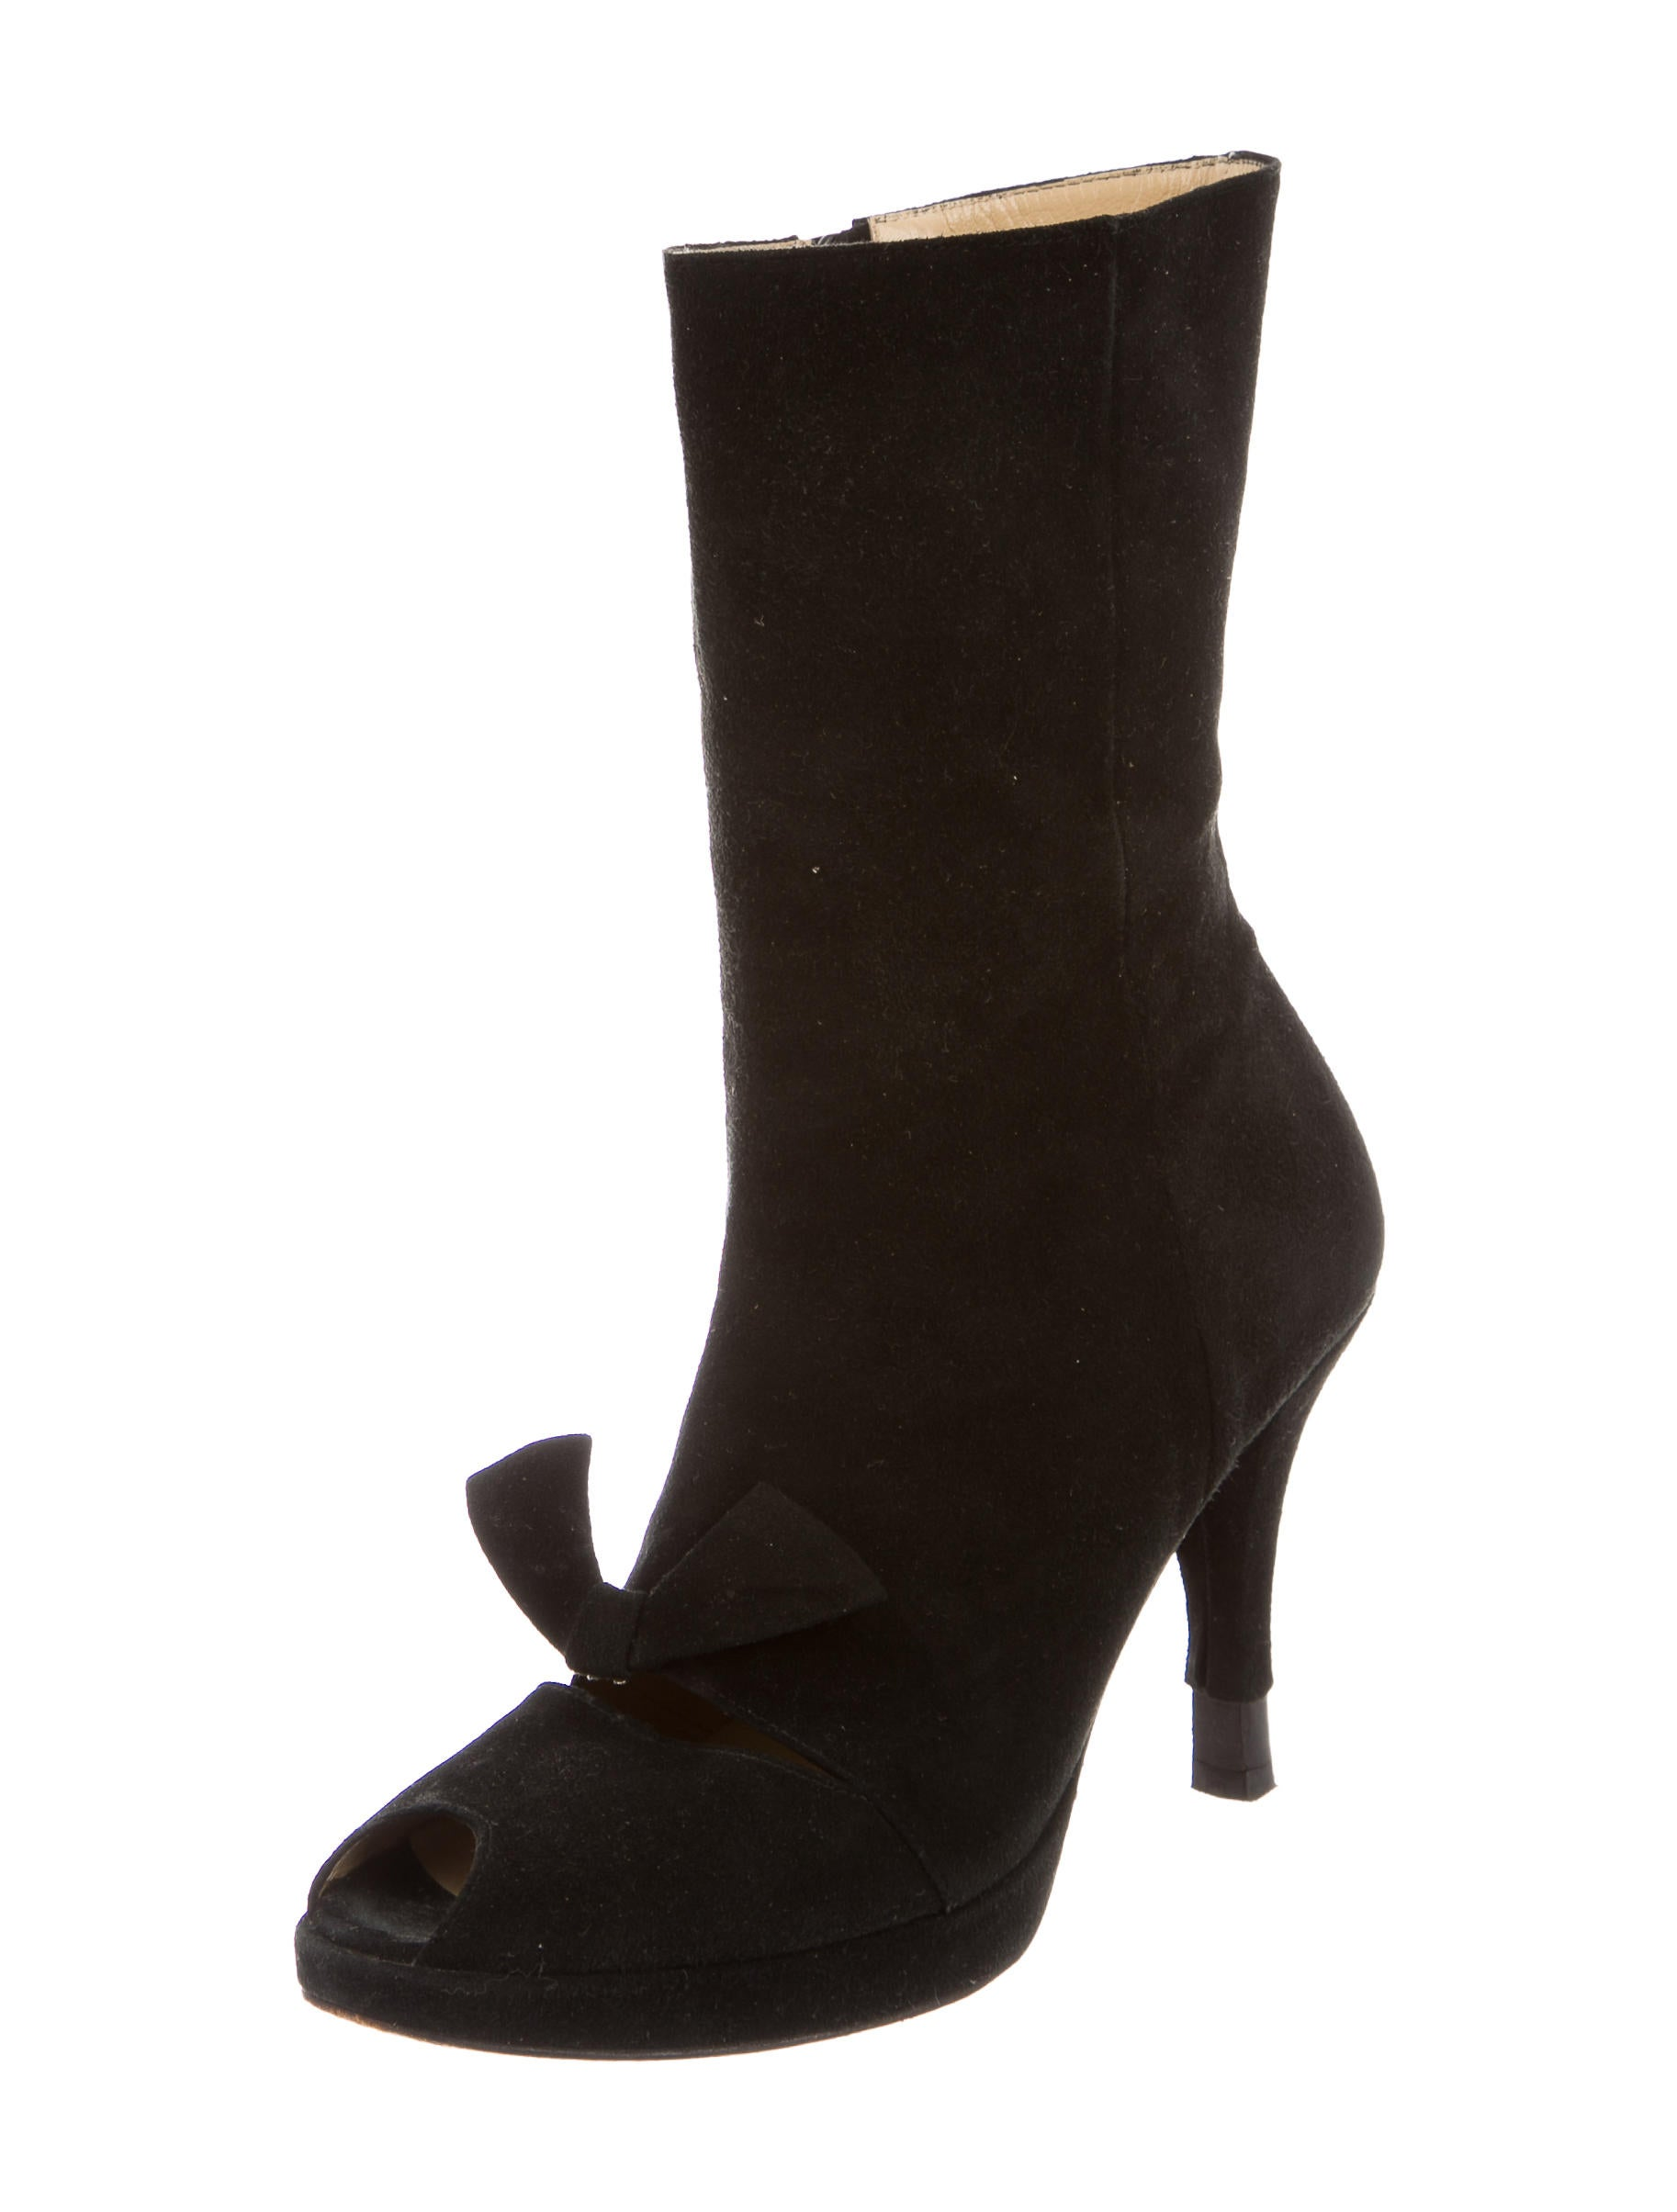 opening ceremony suede mid calf boots shoes woc23859